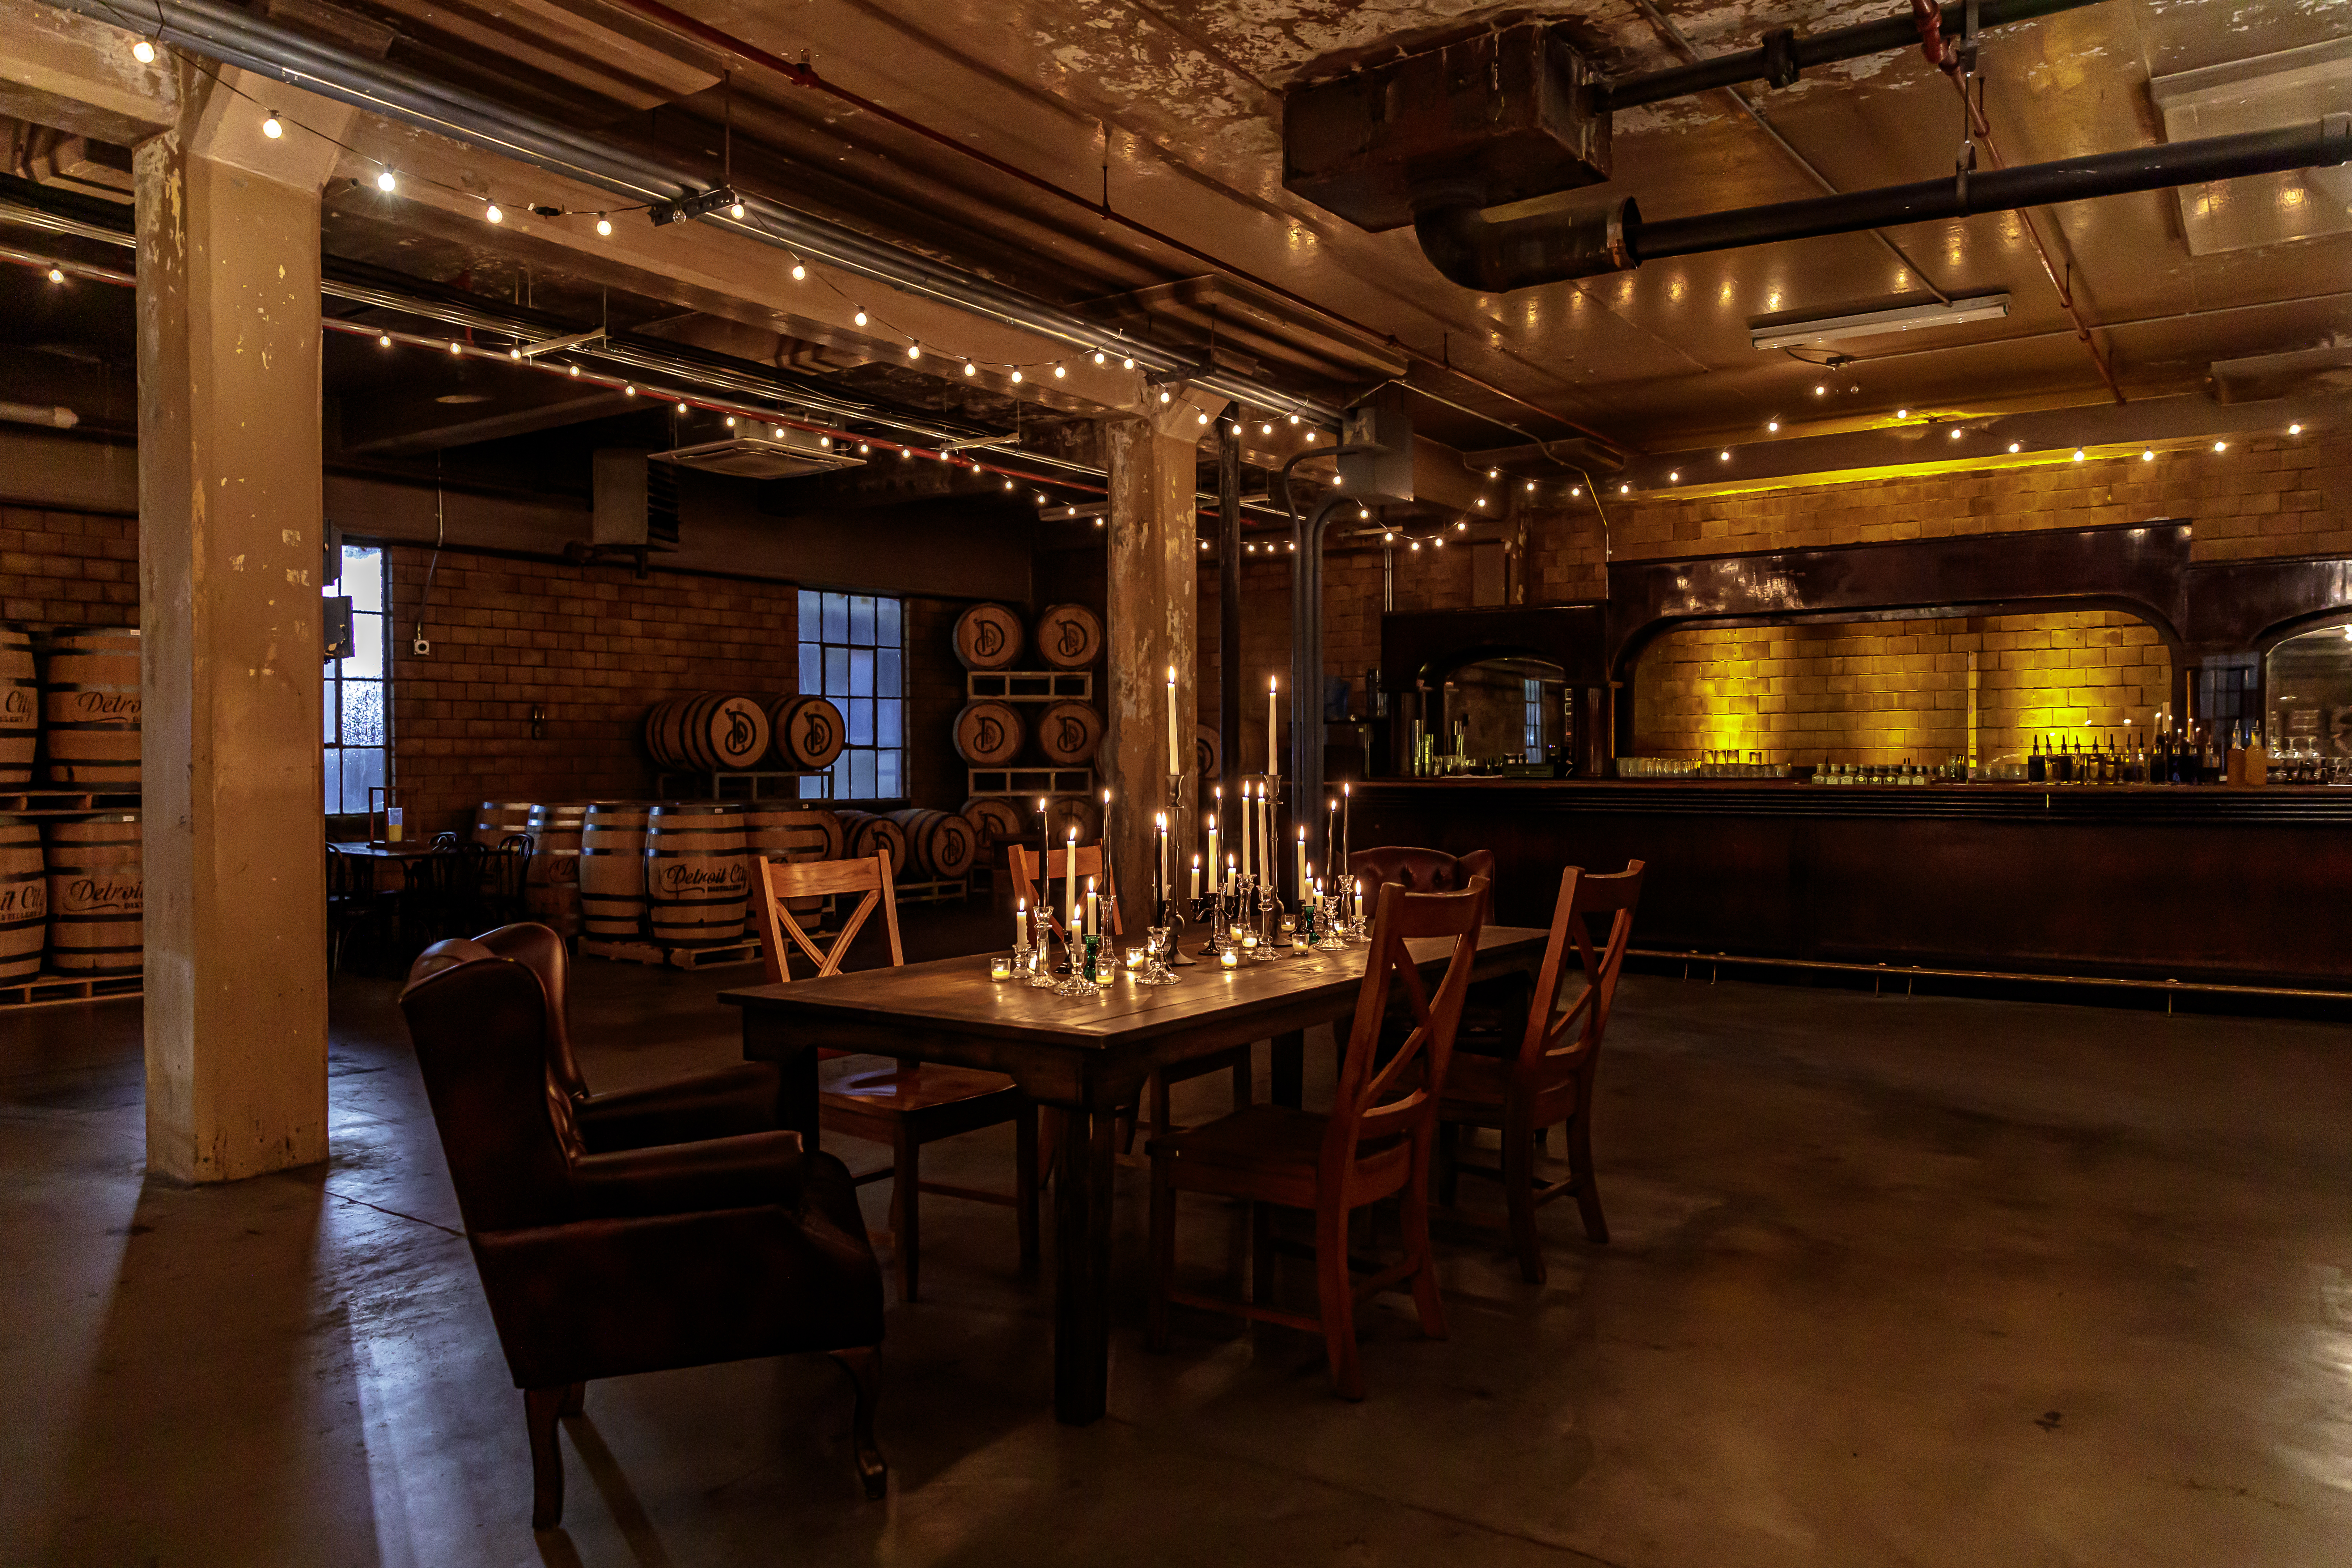 A table sits inside a dimly lit room with whiskey barrels, string lights, and candles.